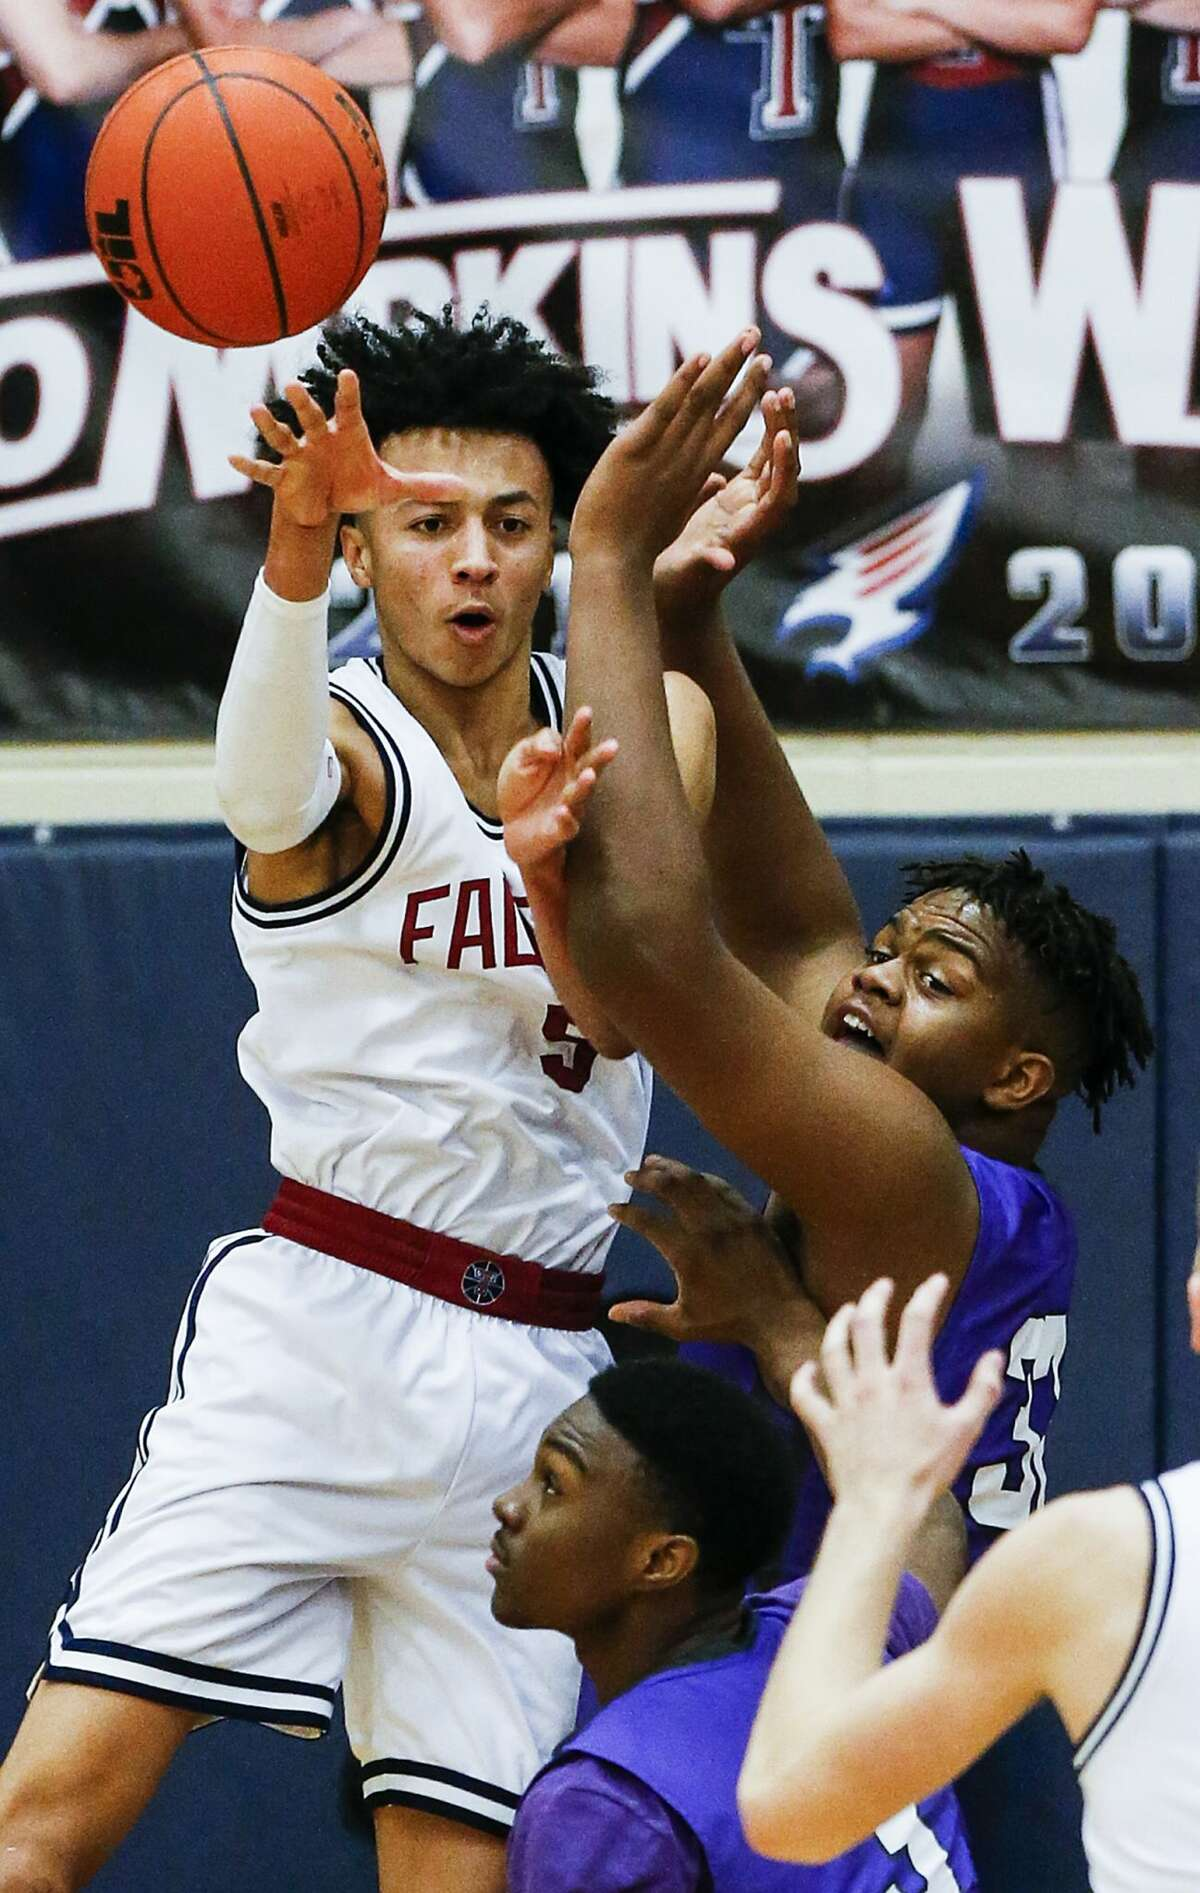 Tompkins' Emmanuel Holt (5) passes the ball as he is defended by Morton Ranch's Eddie Lampkin (32) during a 19-6A high school basketball game at Tompkins High School on Friday, Jan. 19, 2018, in Katy. ( Brett Coomer / Houston Chronicle )